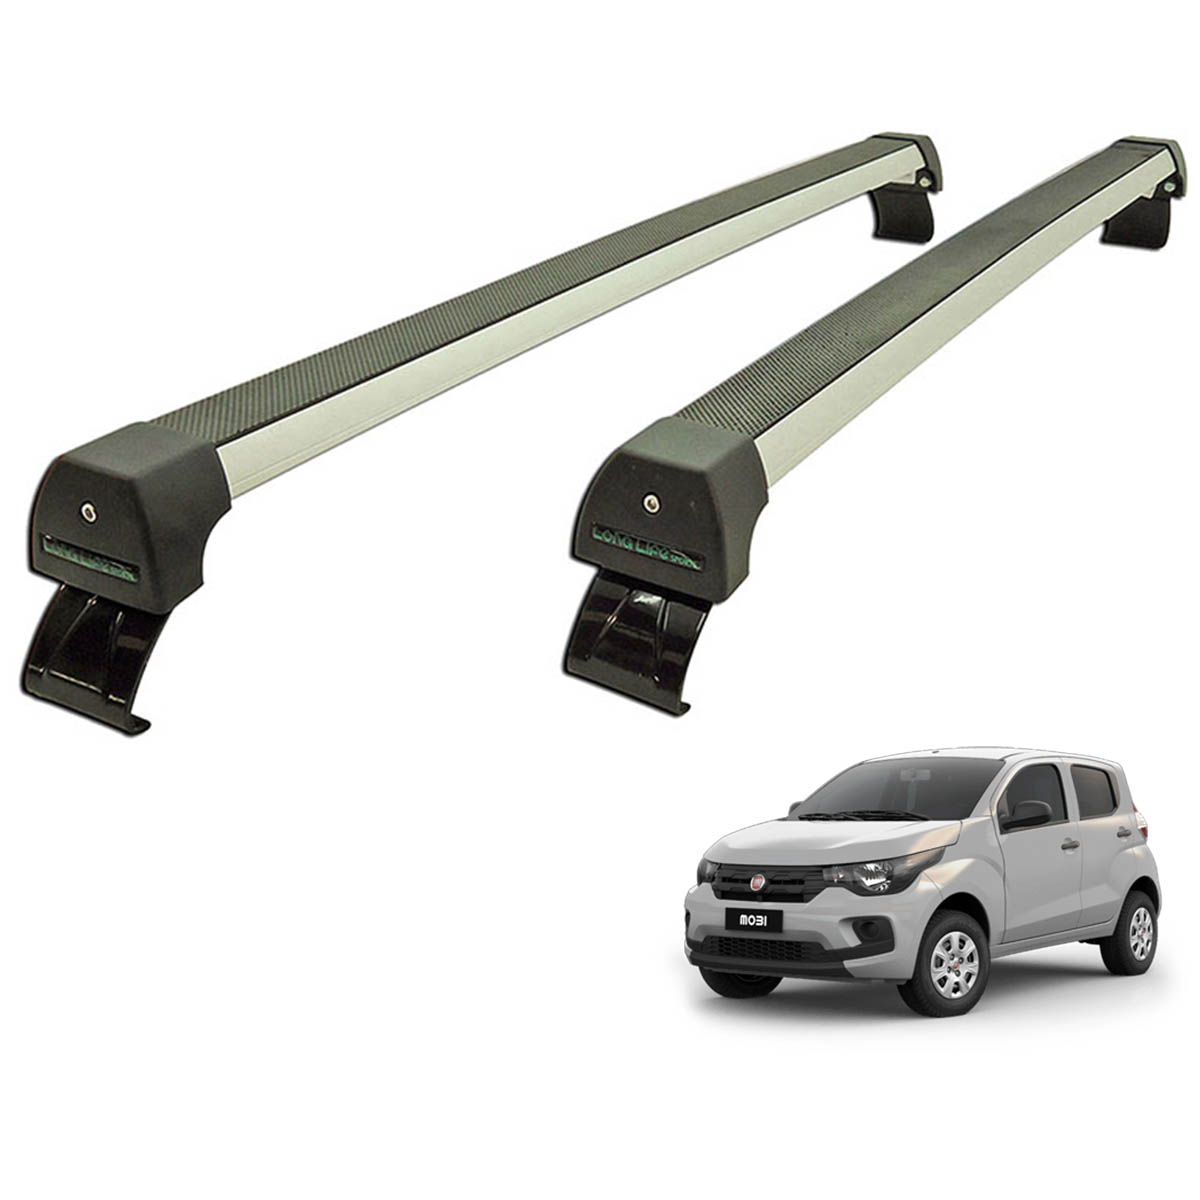 Rack de teto Fiat Mobi 2017 2018 2019 2020 Long Life Sports anodizado